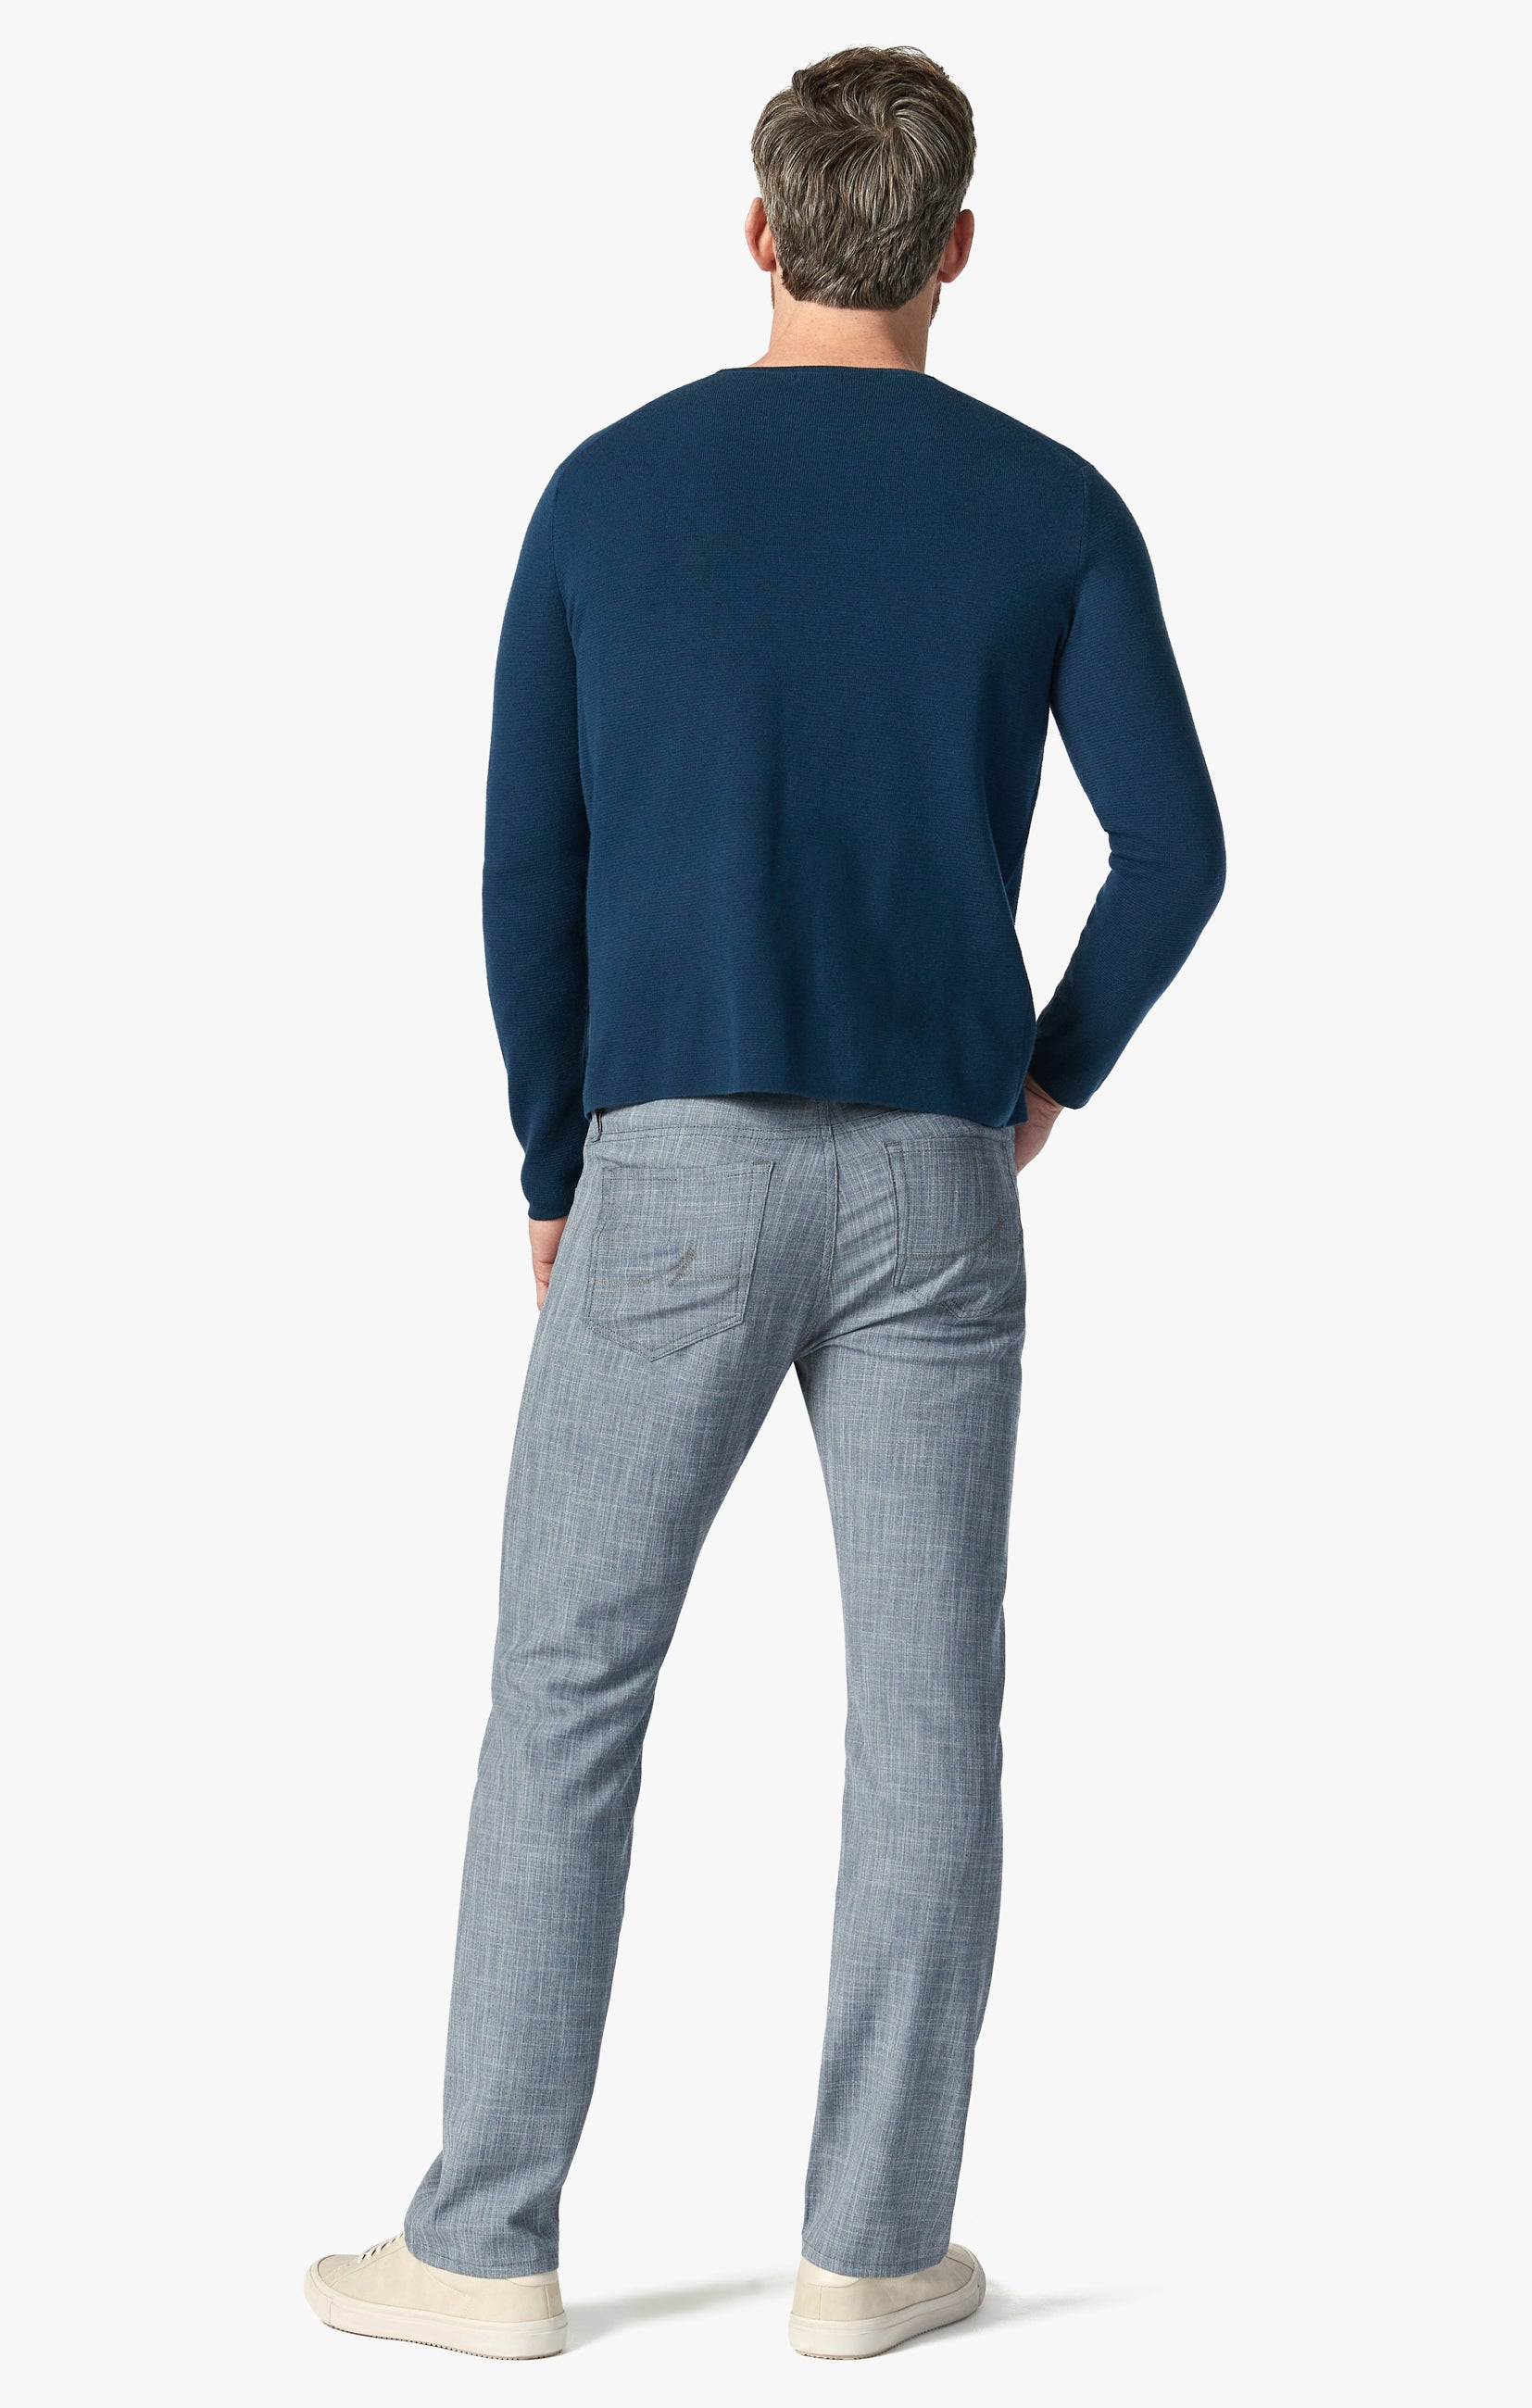 Courage Straight Leg Pants In Grey Cross Twill Image 4